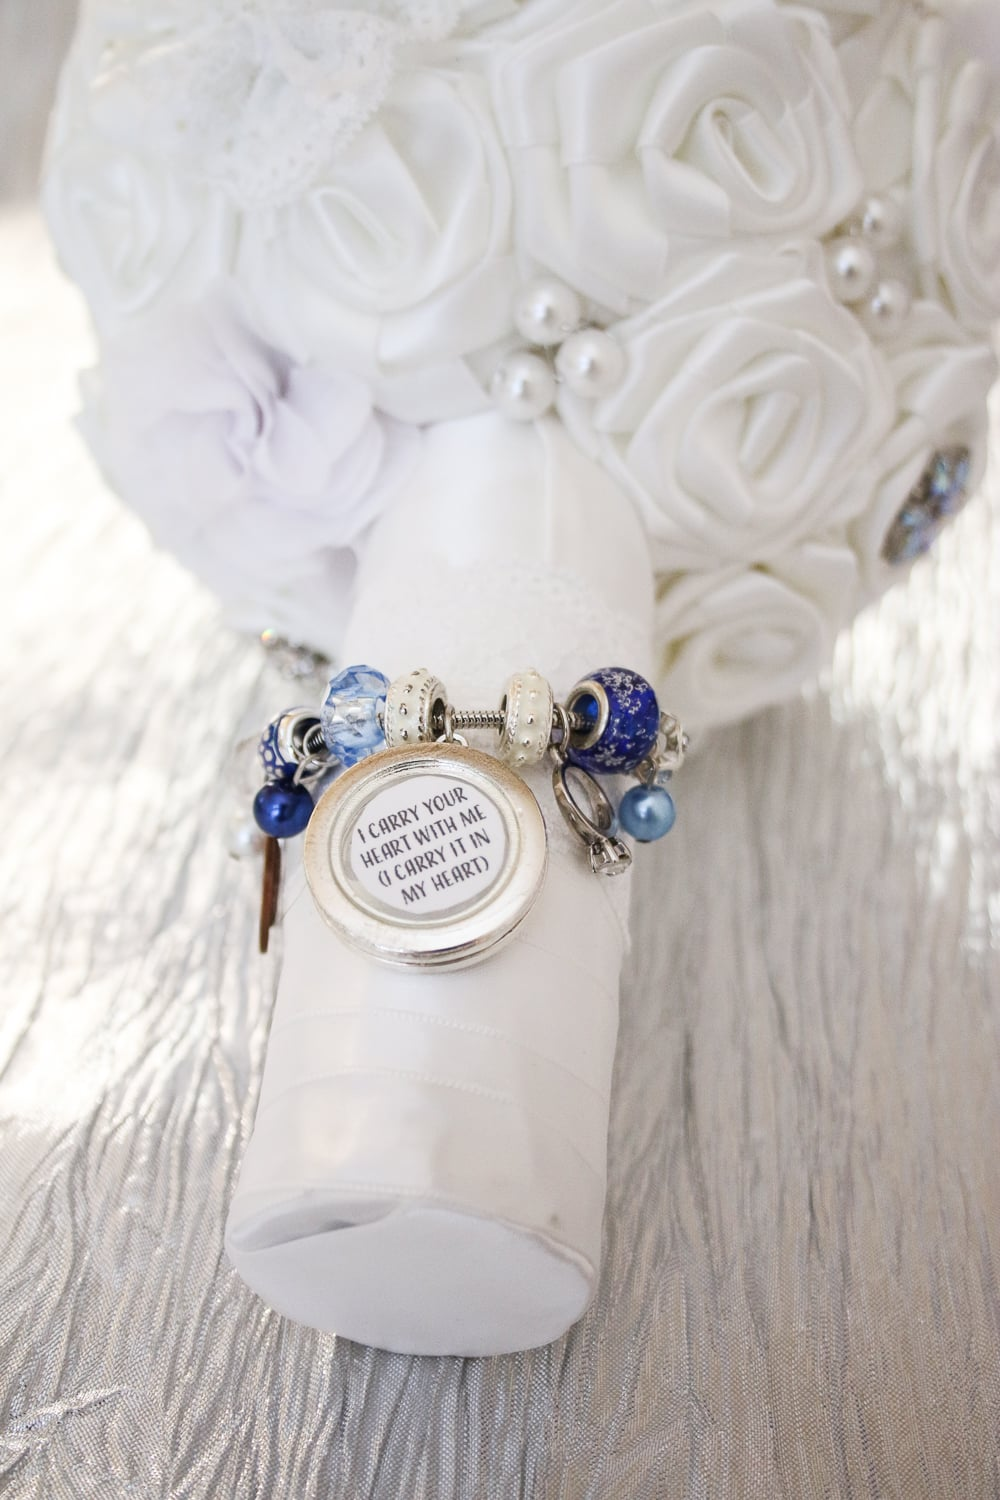 Something Old New Borrowed And Blue Bracelet Or Bouquet Charm The Budget Savvy Bride